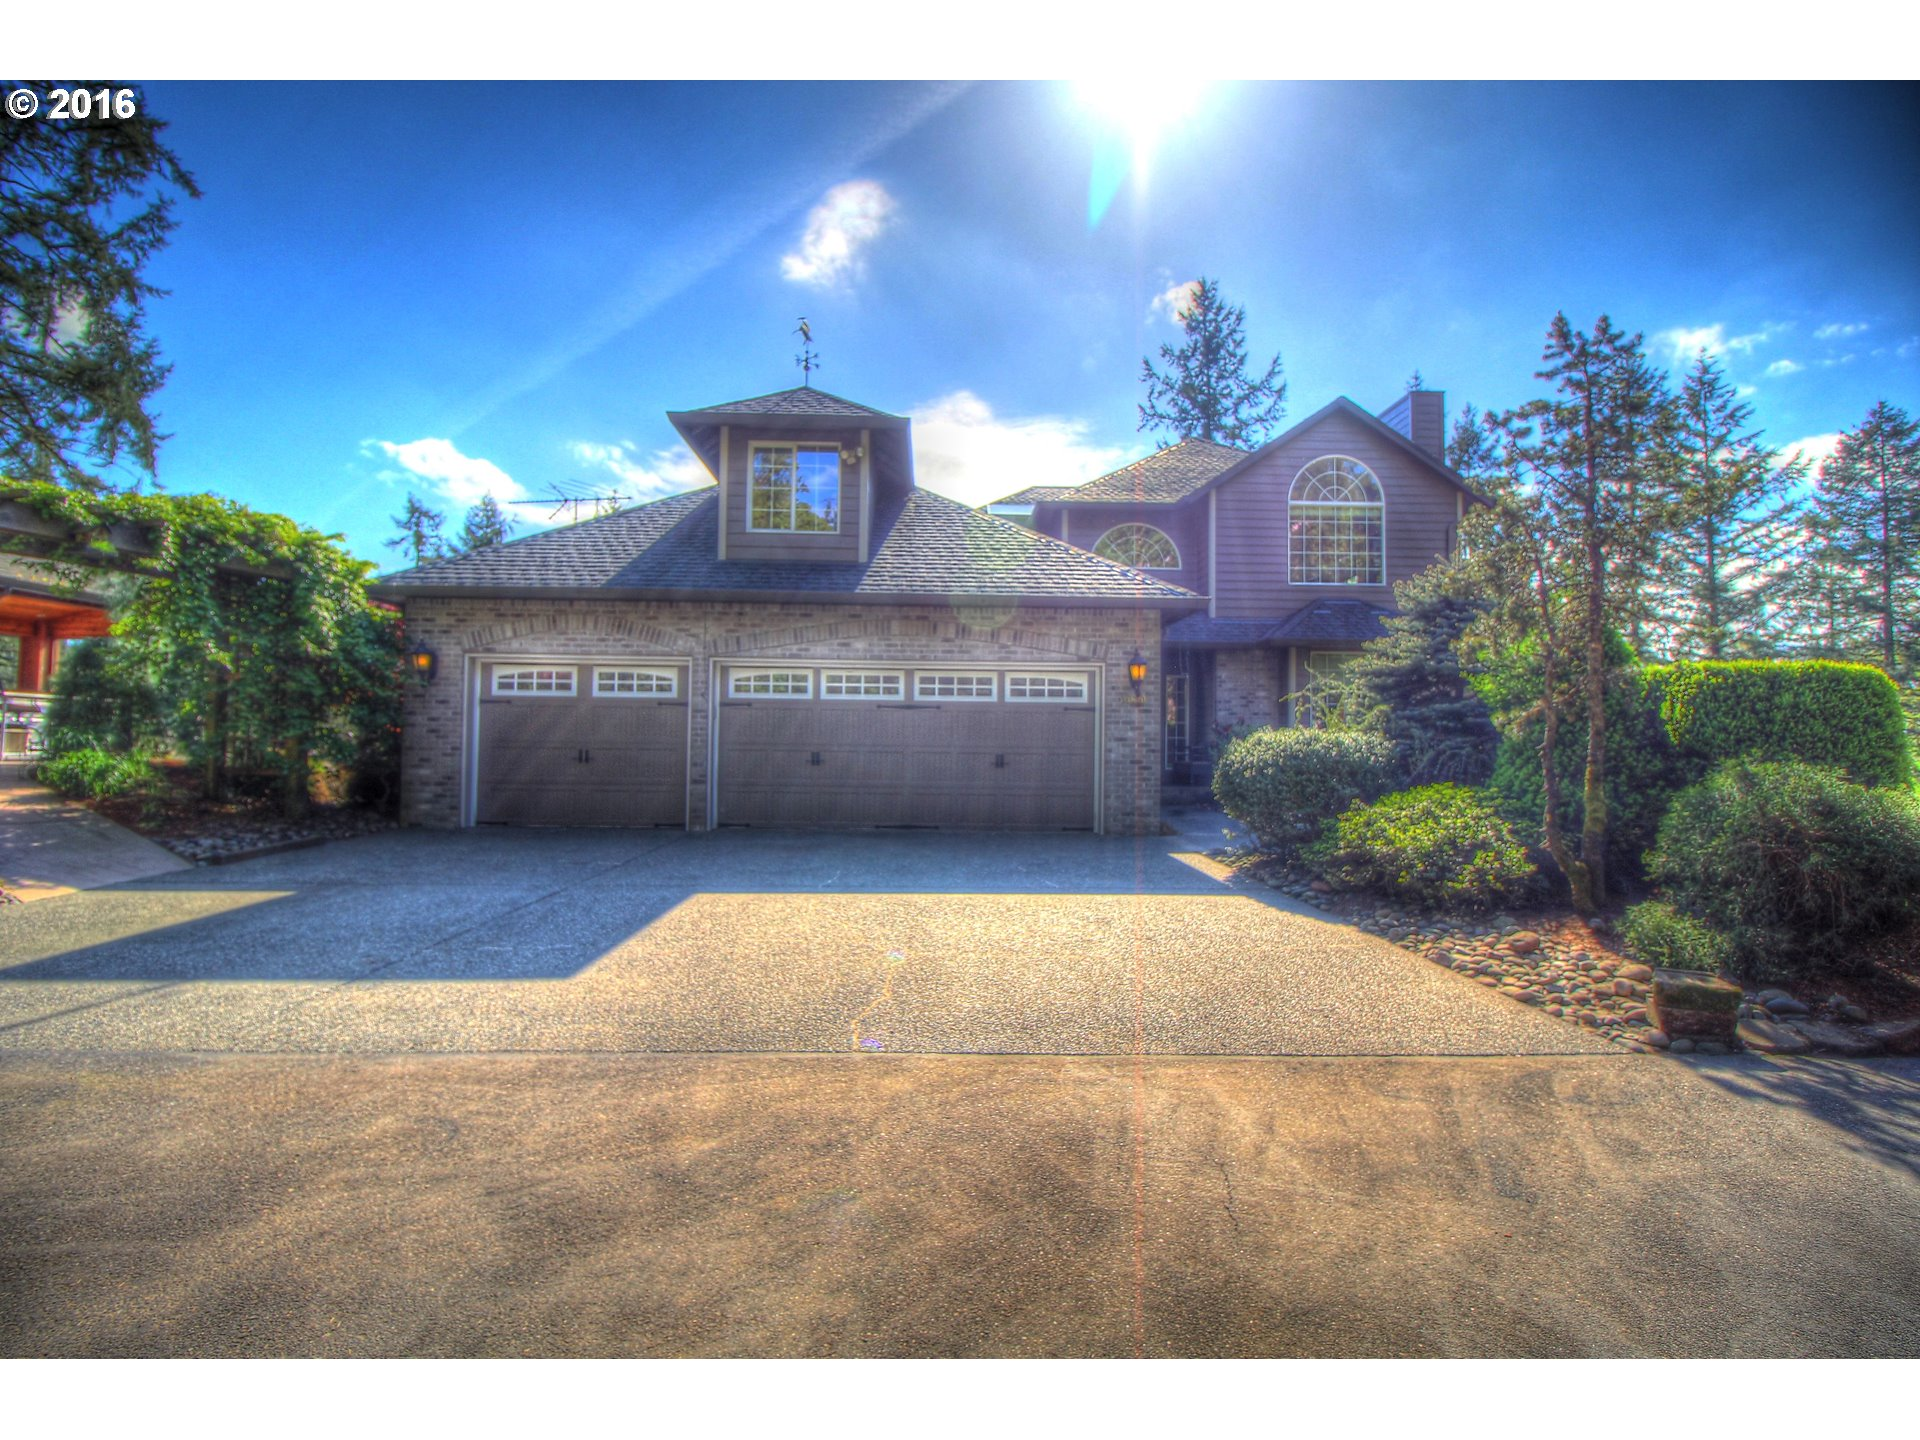 """You'll love the Paradise Point Lewis River frontage and view from this large custom home. Cooks kitchen featuring huge island, new $11k GE Monogram 48"""" gas range, commercial wok, SubZero refrigerator and more. Master suite has gas fireplace and large sitting area. Two family rooms plus a bonus room. All this and more on 5 beautiful acres. The outdoor kitchen is as stunning as the indoor kitchen! Entertain all year round inside and out."""